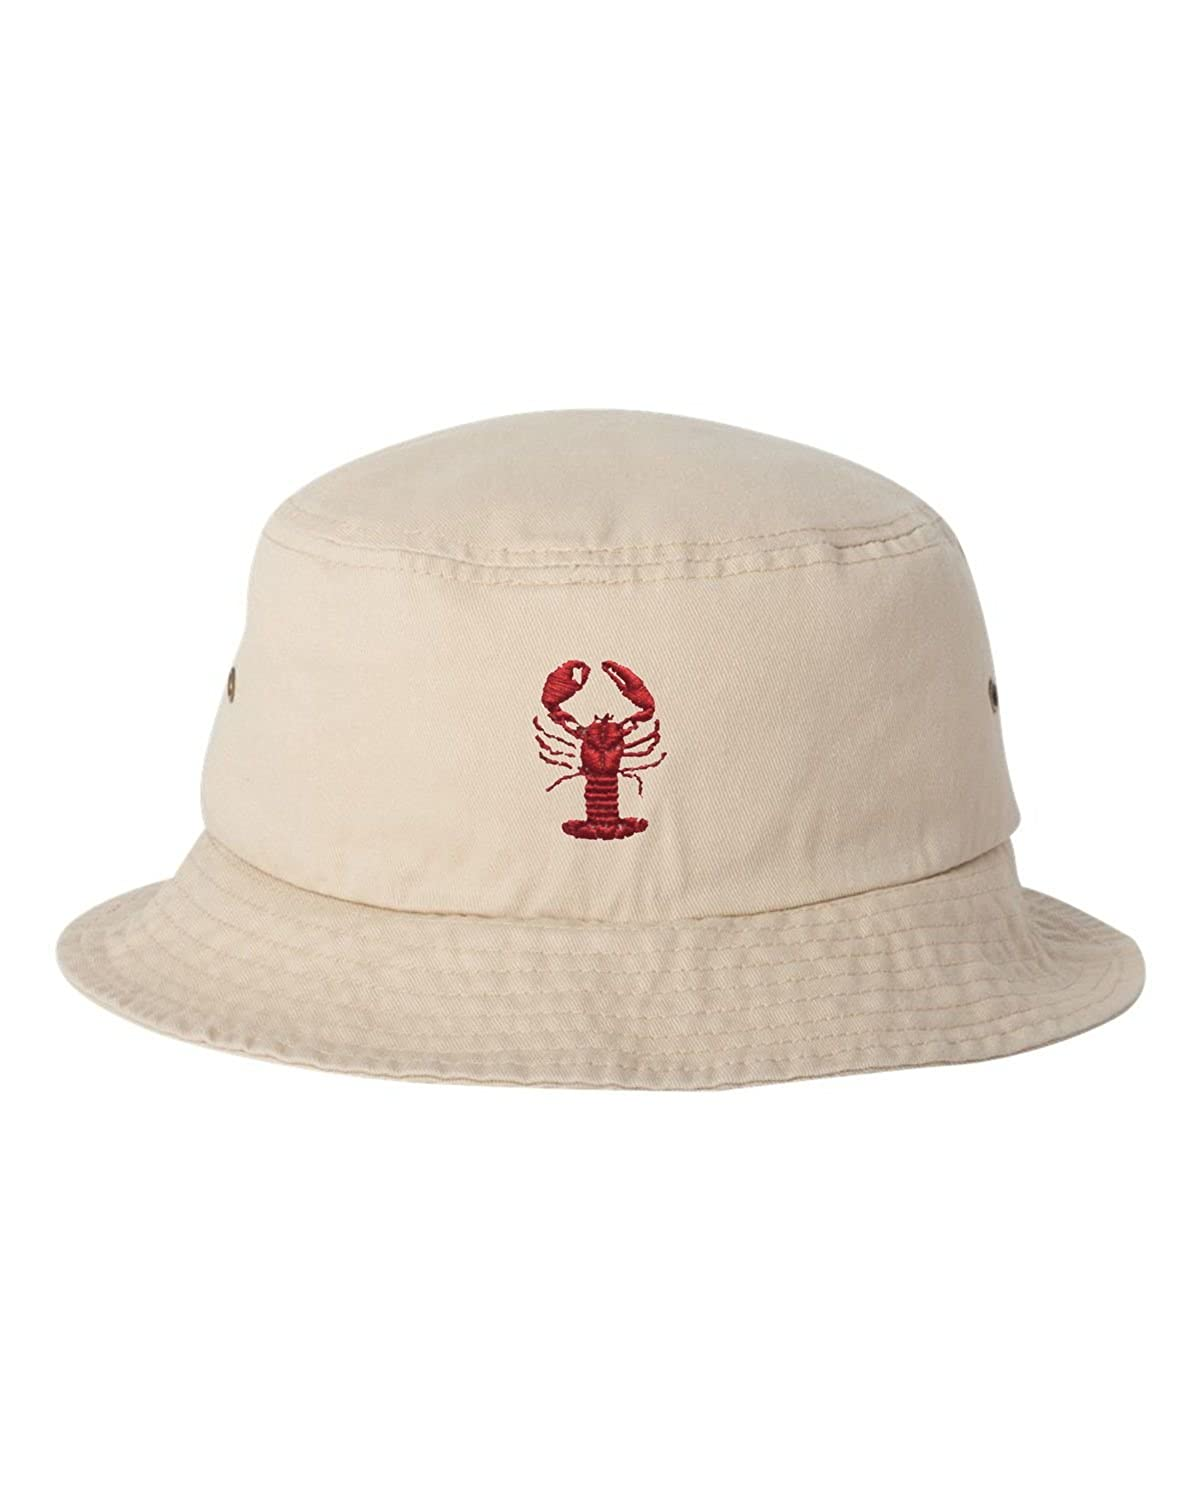 Go All Out Adult Lobster Embroidered Bucket Cap Dad Hat